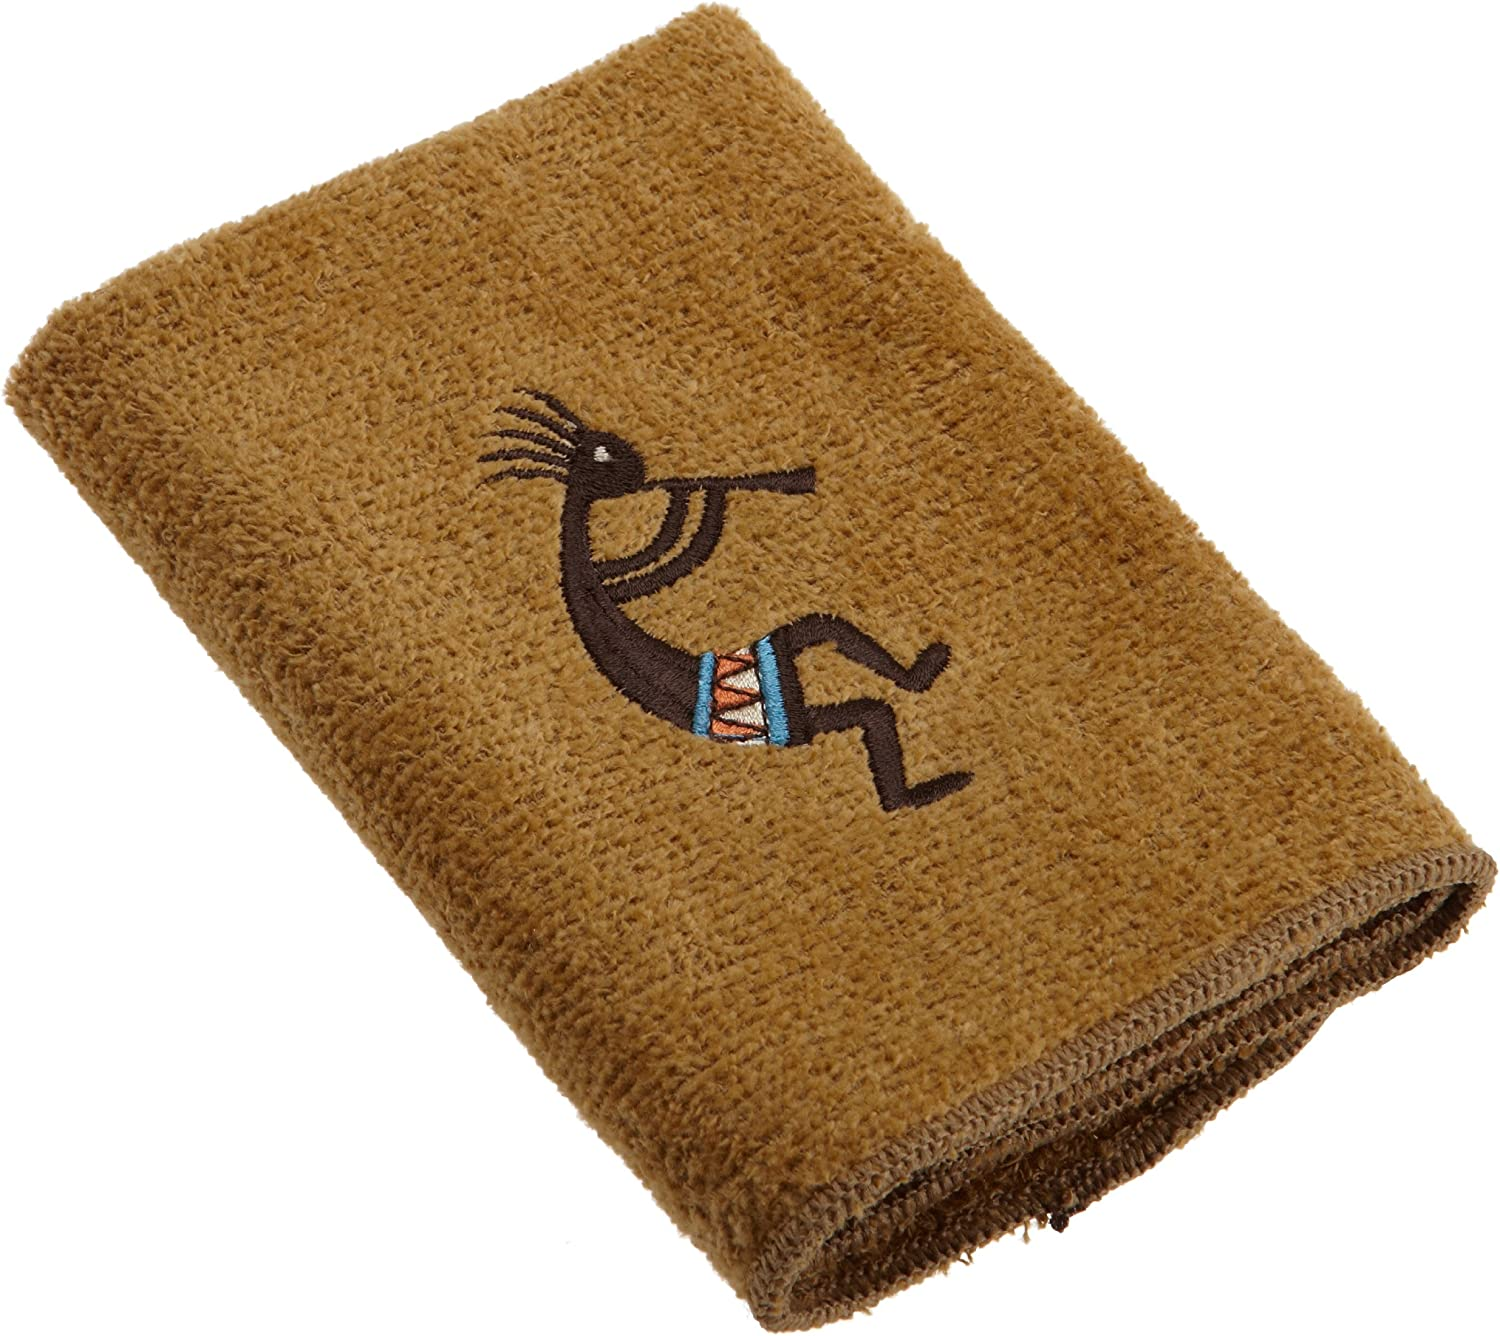 Avanti Linens Kokopelli Wash Cloth, Nutmeg